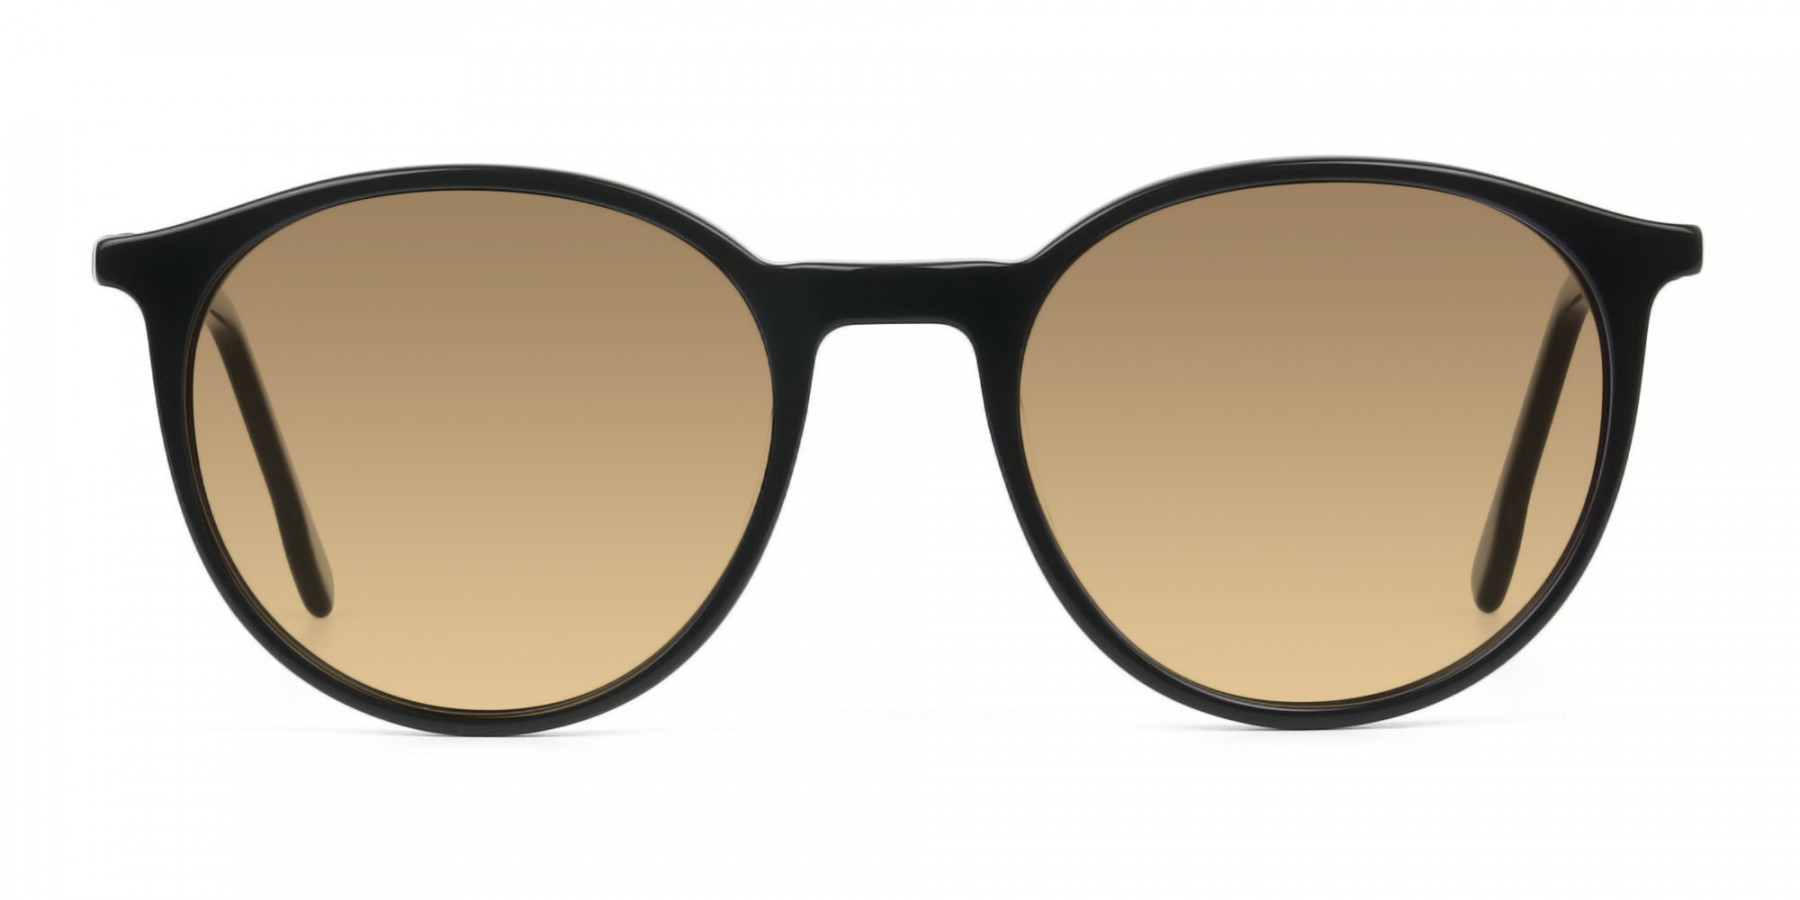 Dark-brown-black-round-sunglasses - 3